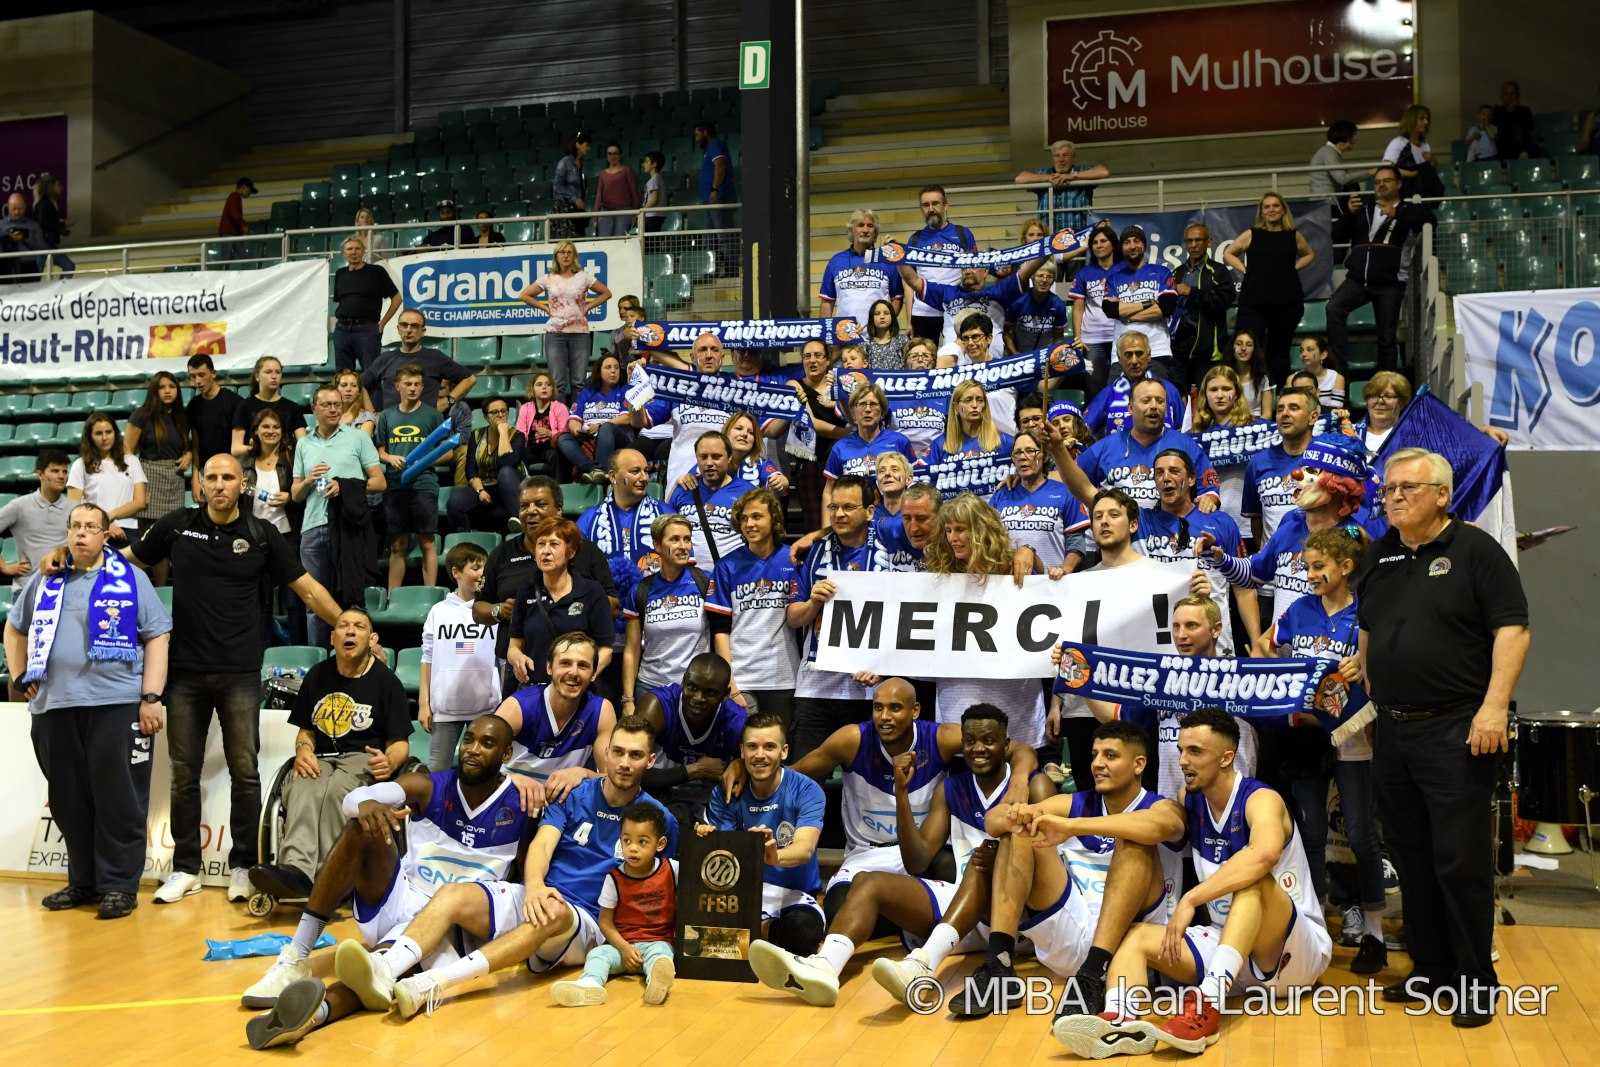 [J.01] SO Pont de Cheruy Charvieu Chavanoz Basket-Ball - FC MULHOUSE : 61 - 64 - Page 2 Merci